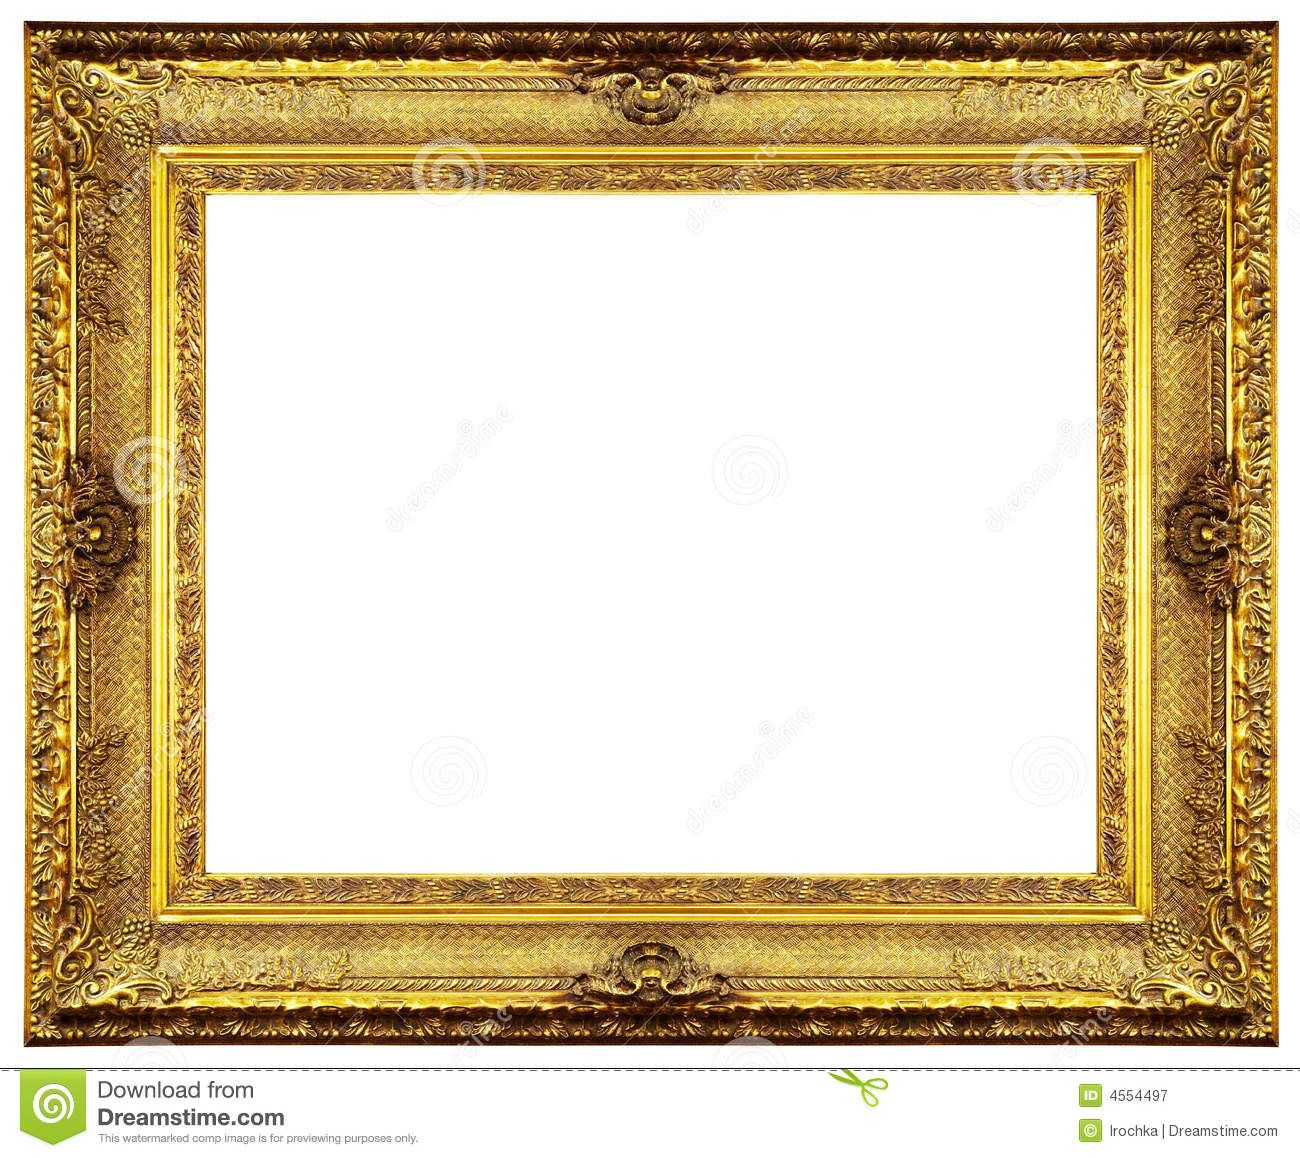 Antique gold frame clipart graphic royalty free download Gold Frame Border Clip Art | Chipped vintage gold ornate frame ... graphic royalty free download